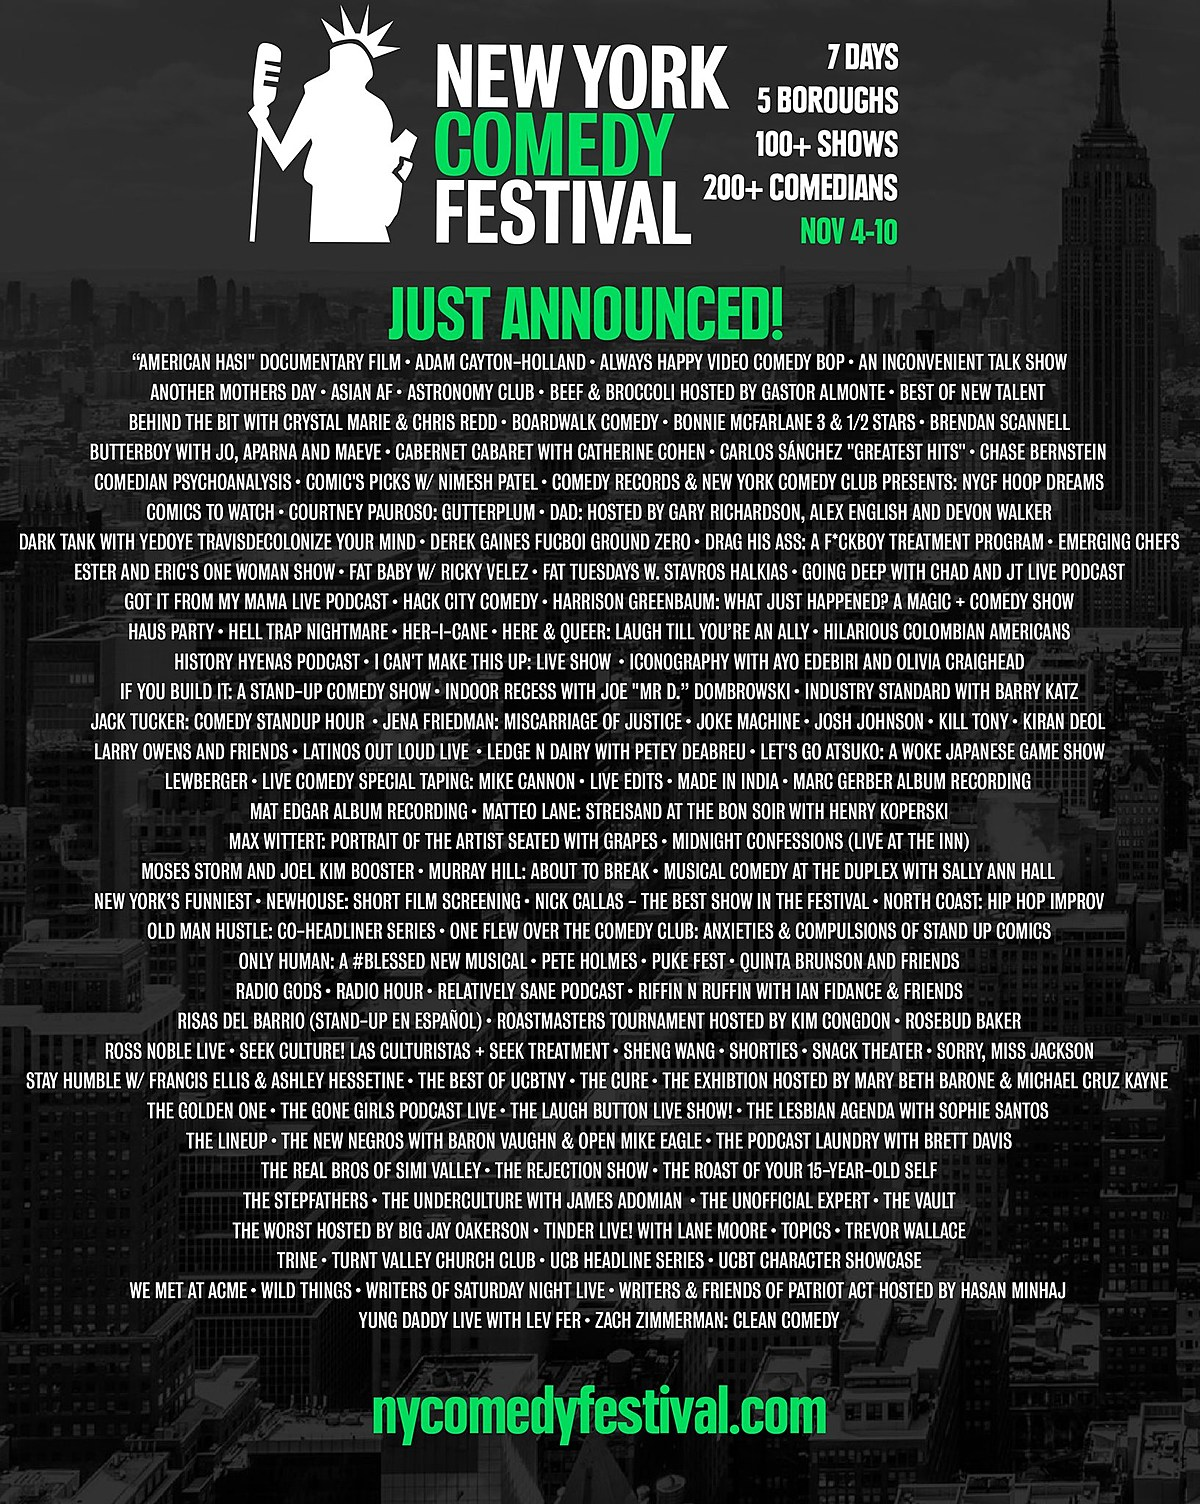 NY Comedy Fest adds 100 more shows to 2019 lineup (Hasan Minhaj, Pete Holmes, more)